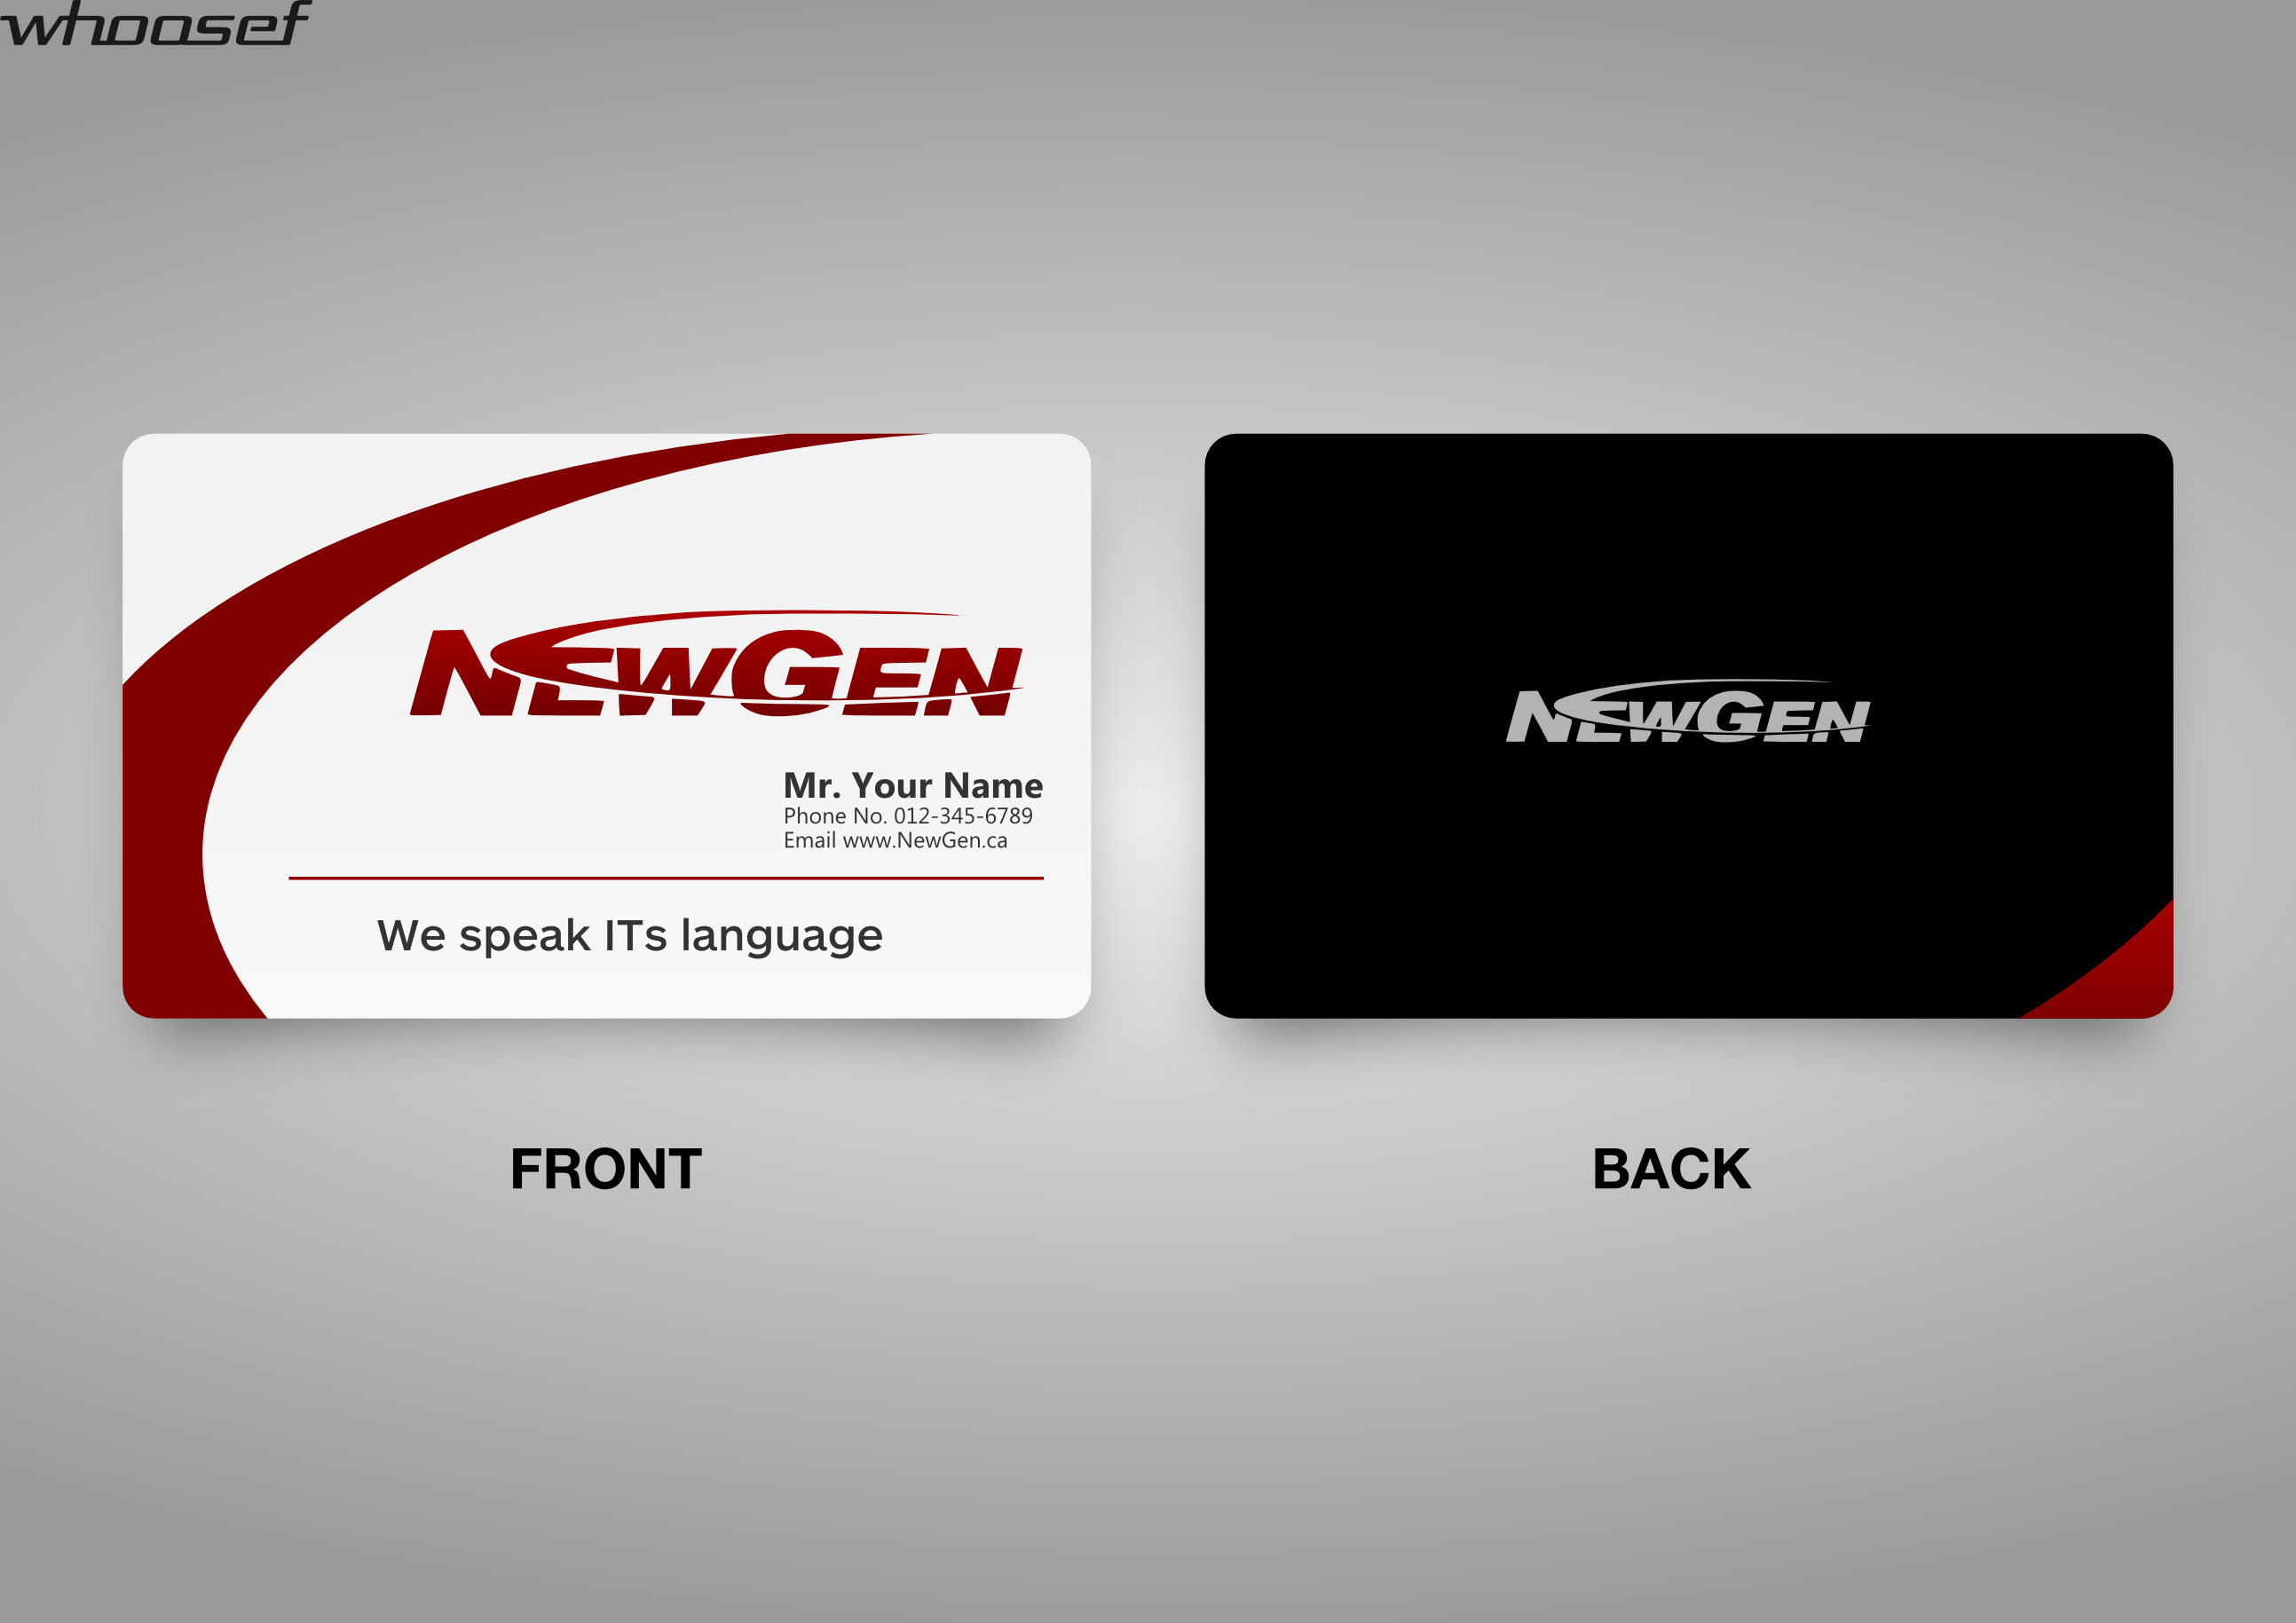 Business Card Design by whoosef - Entry No. 113 in the Business Card Design Contest Inspiring Business Card Design for NewGen Technologies.